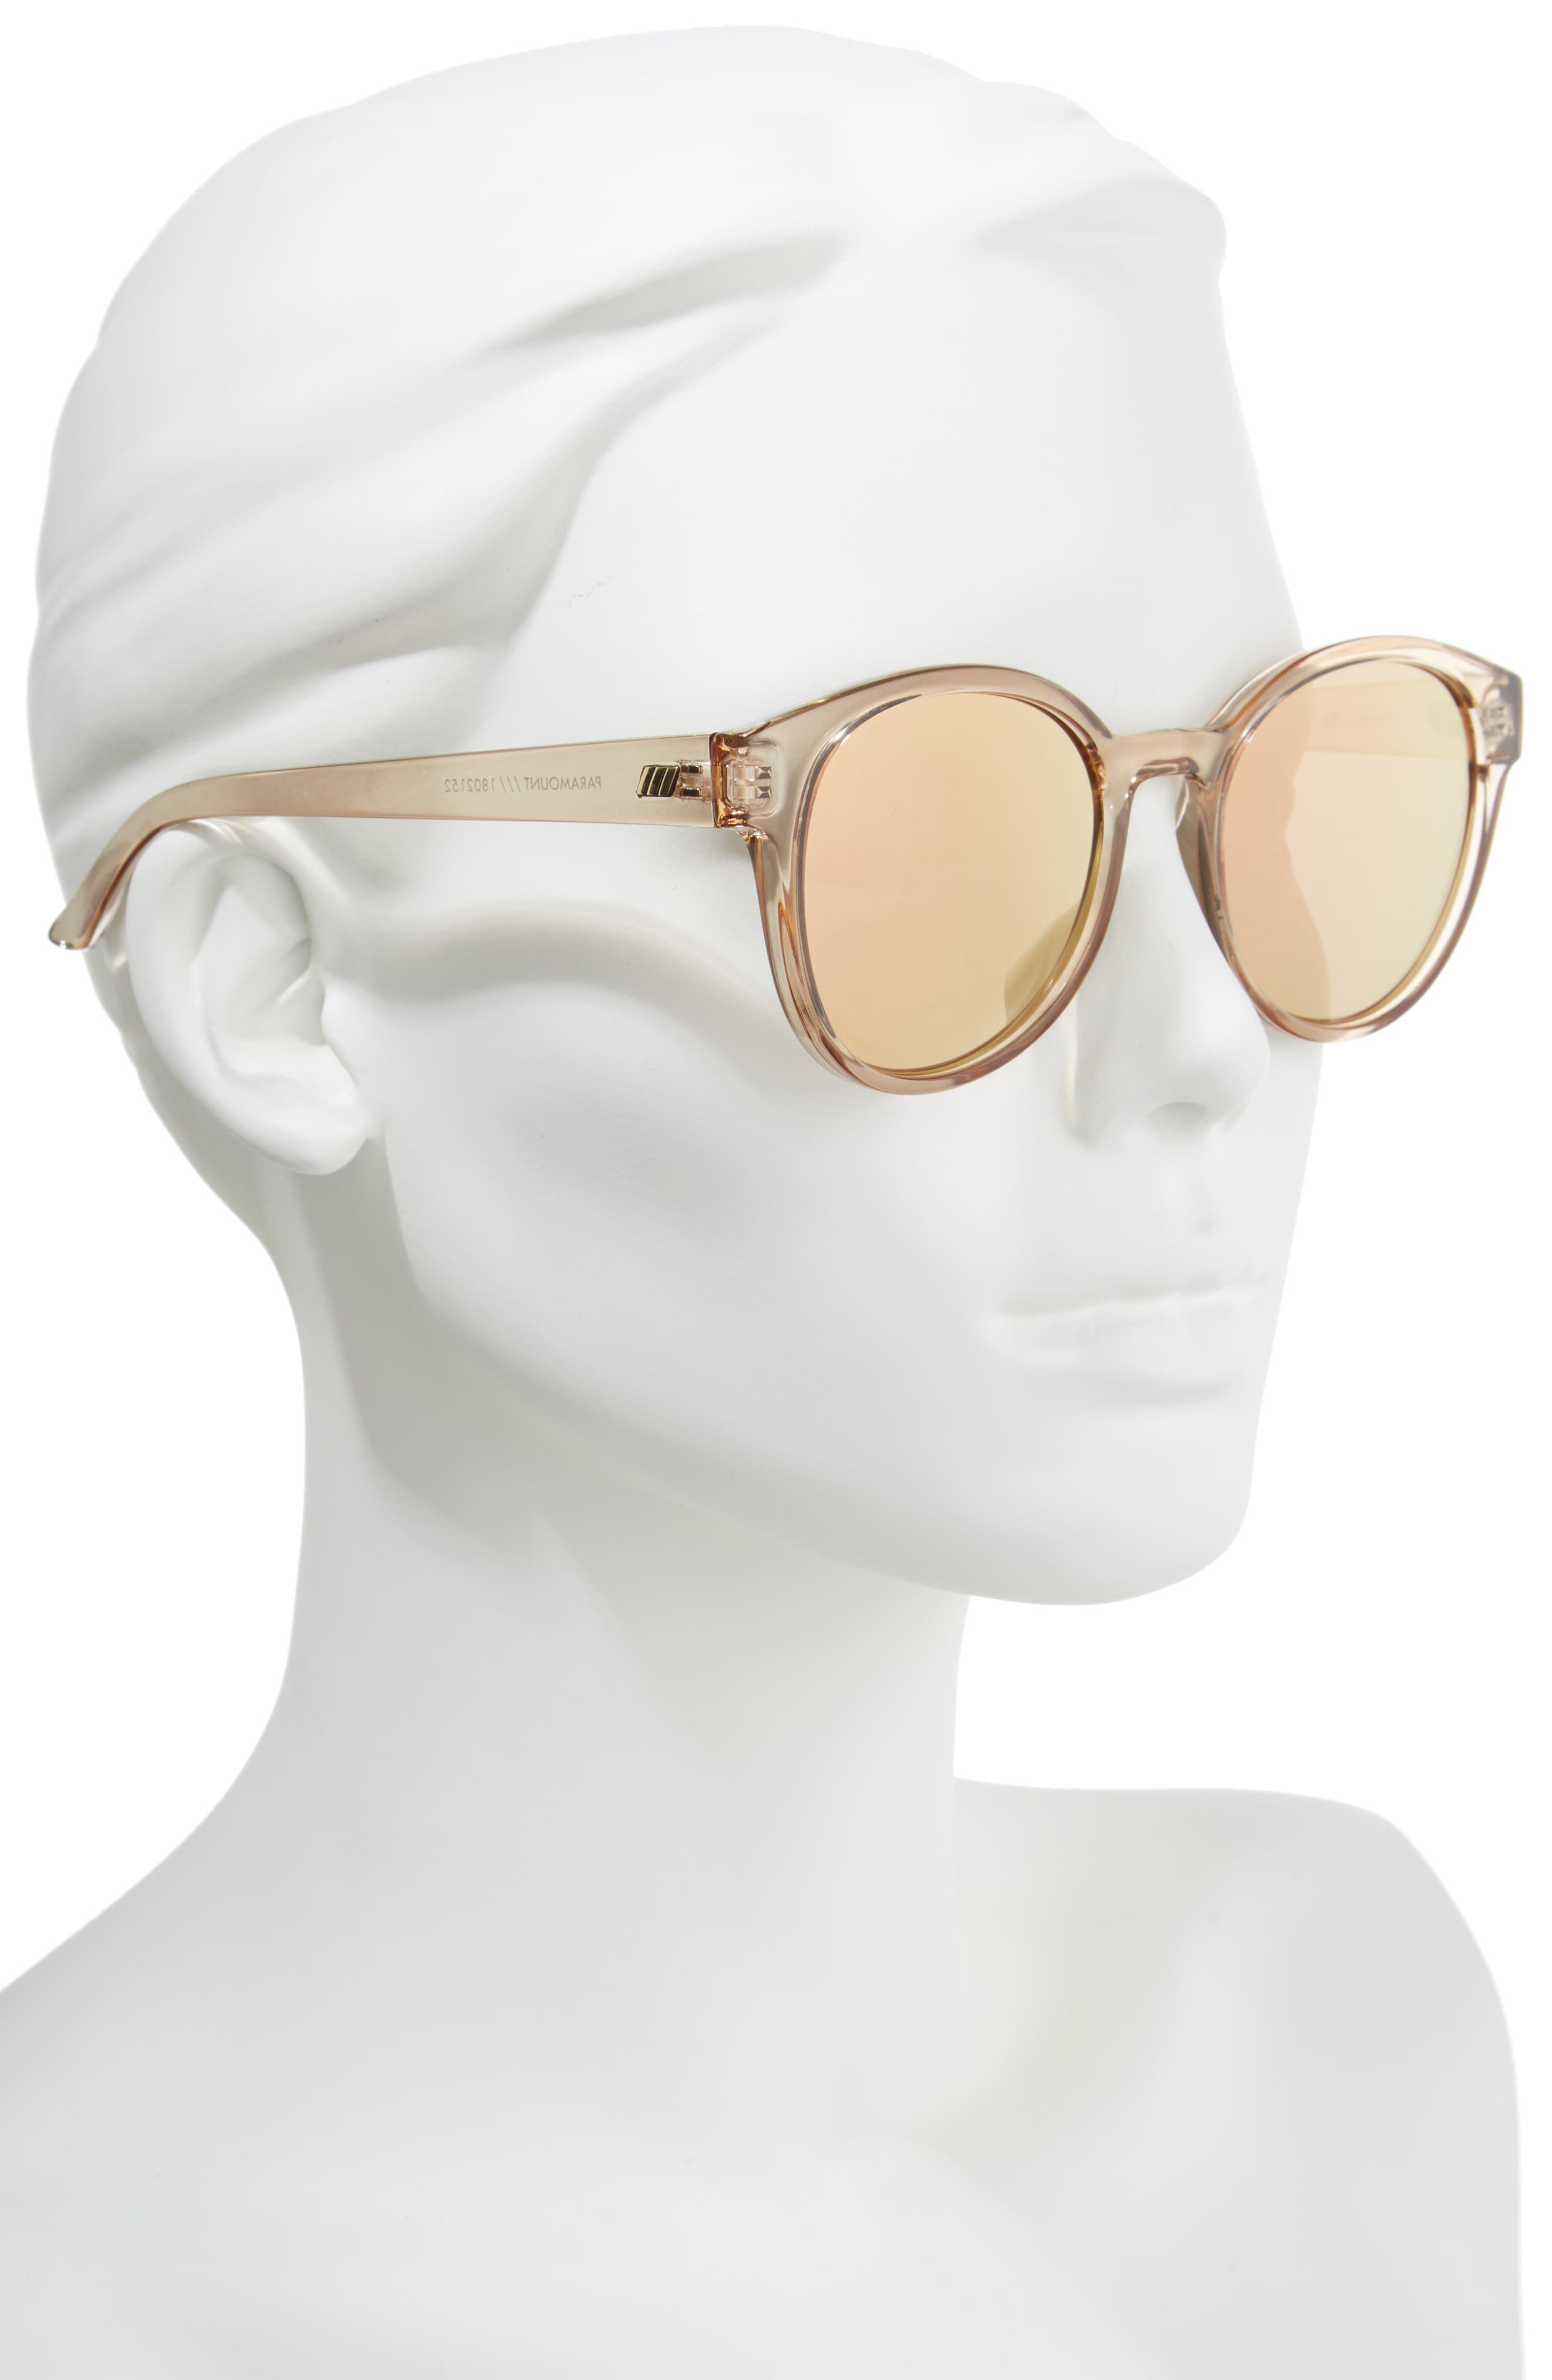 Paramount 52mm Round Sunglasses,                             Alternate thumbnail 2, color,                             Tan